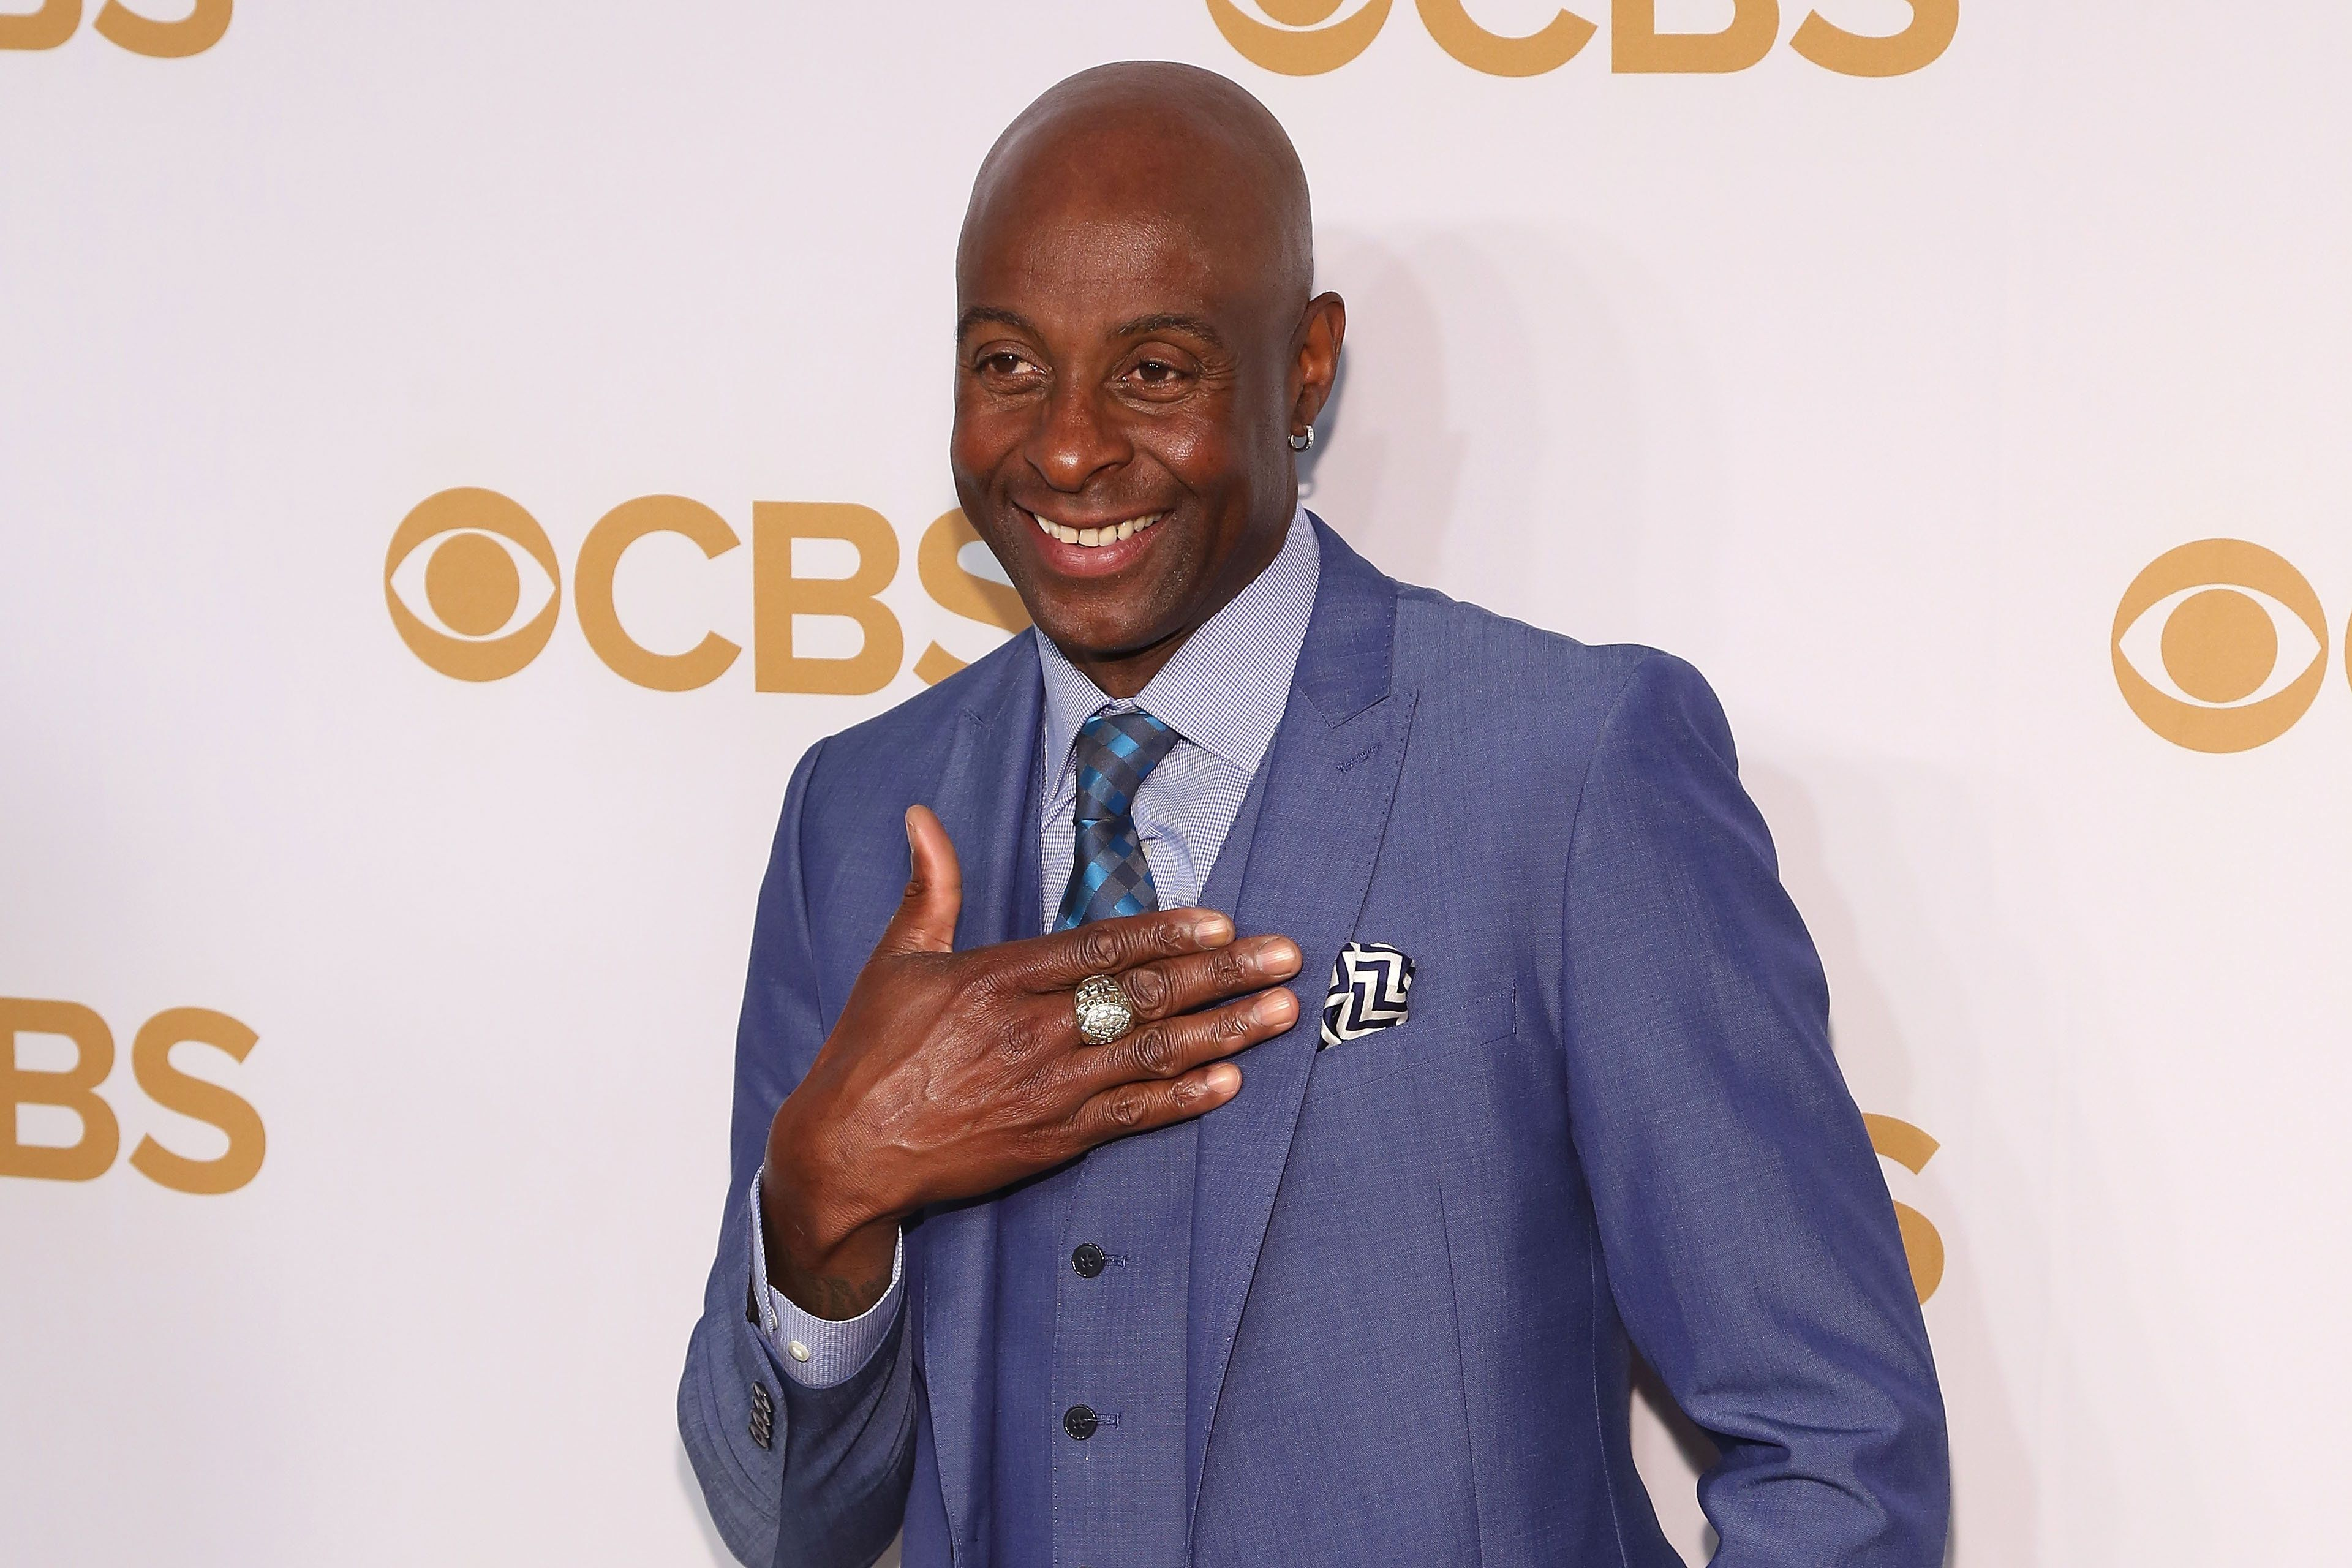 NEW YORK, NY - MAY 13:  Jerry Rice attends the 2015 CBS Upfront at The Tent at Lincoln Center on May 13, 2015 in New York City.  (Photo by Taylor Hill/Getty Images)